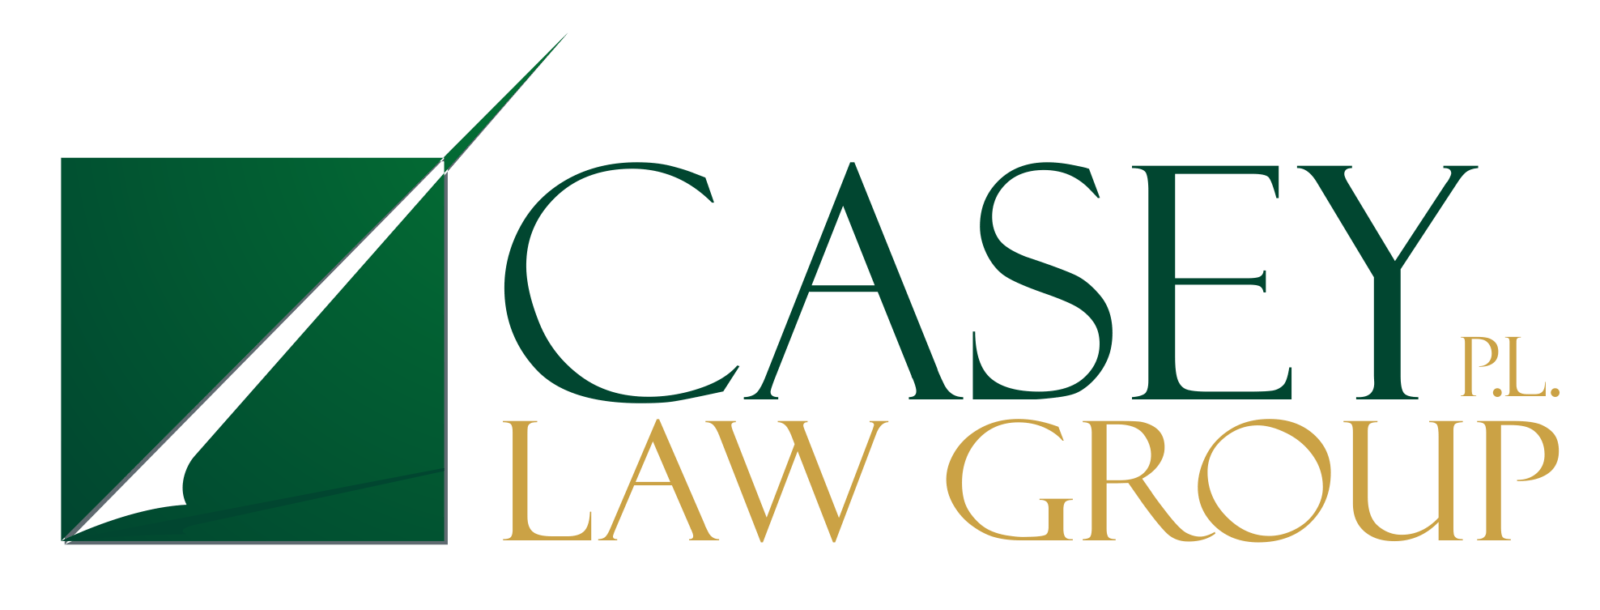 Casey Law Group